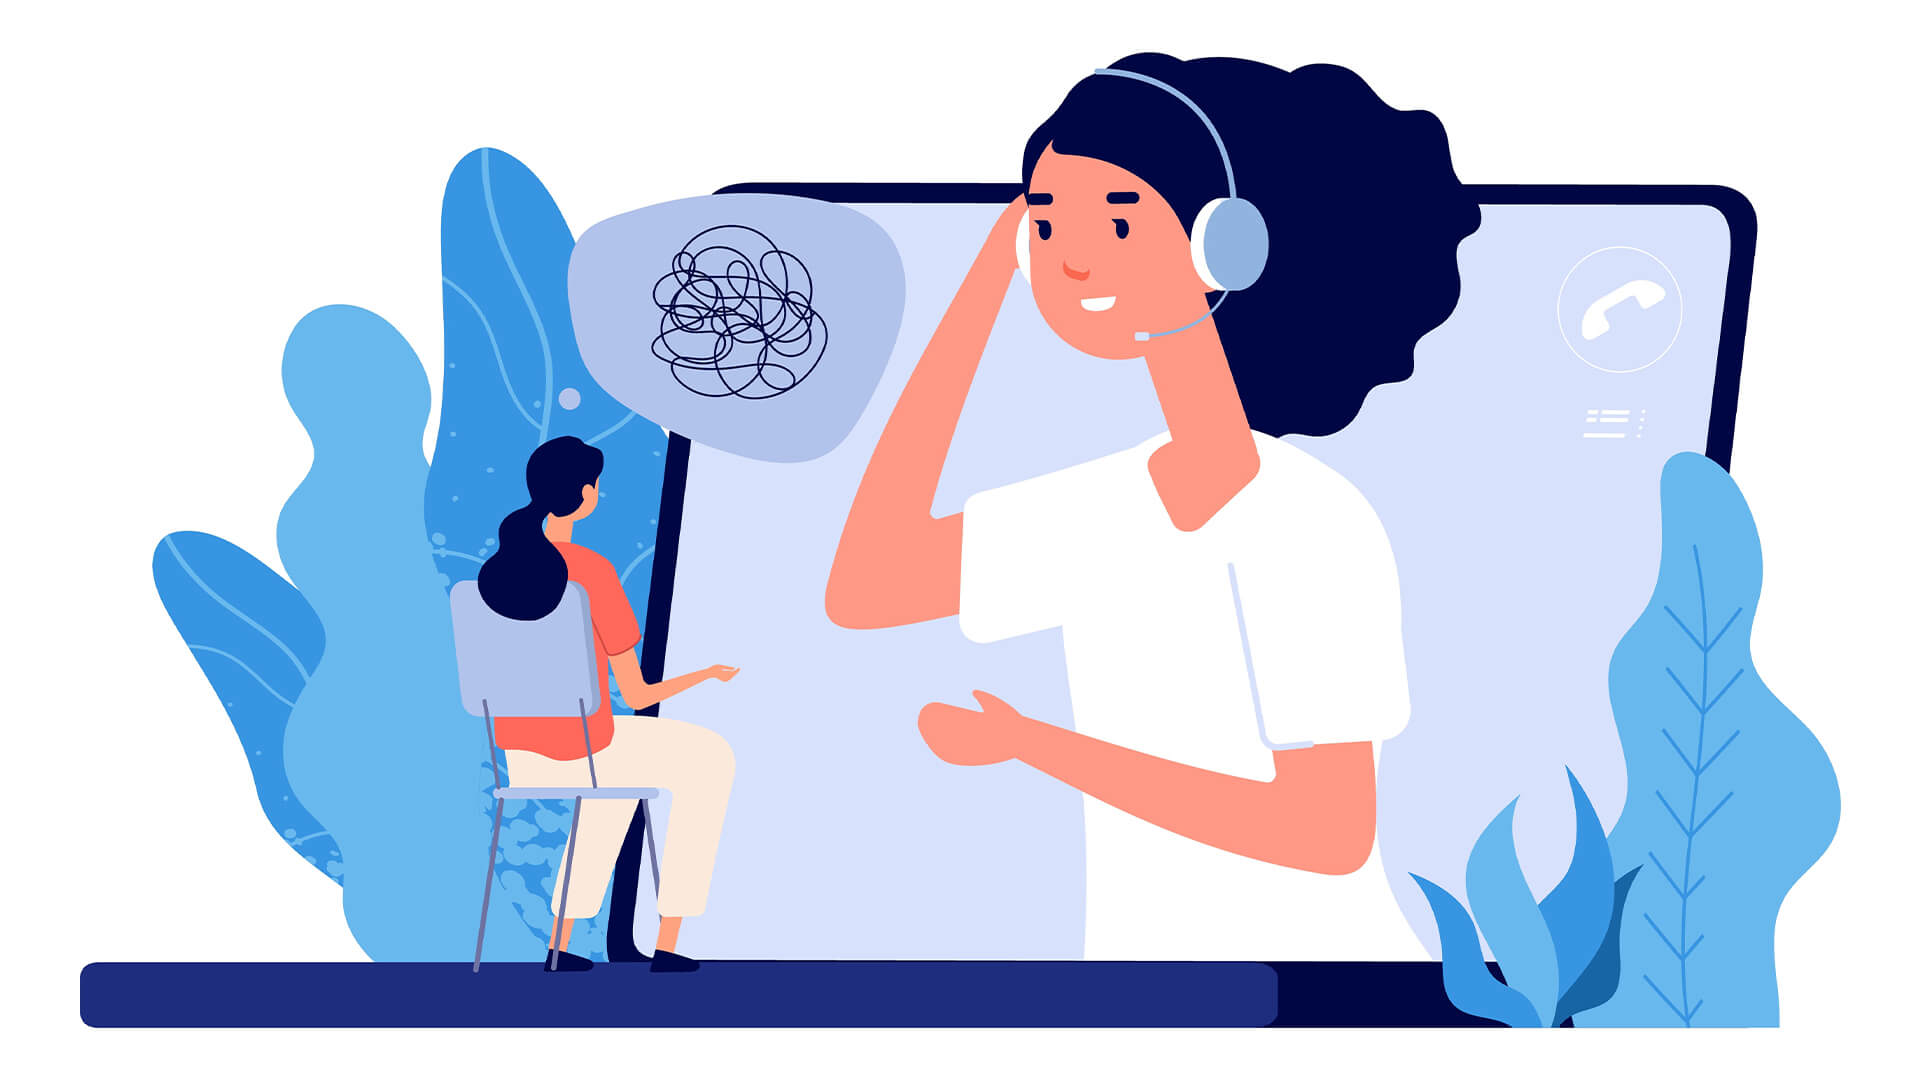 16 Million Reasons Why Health Tech is a Win for Mental Health